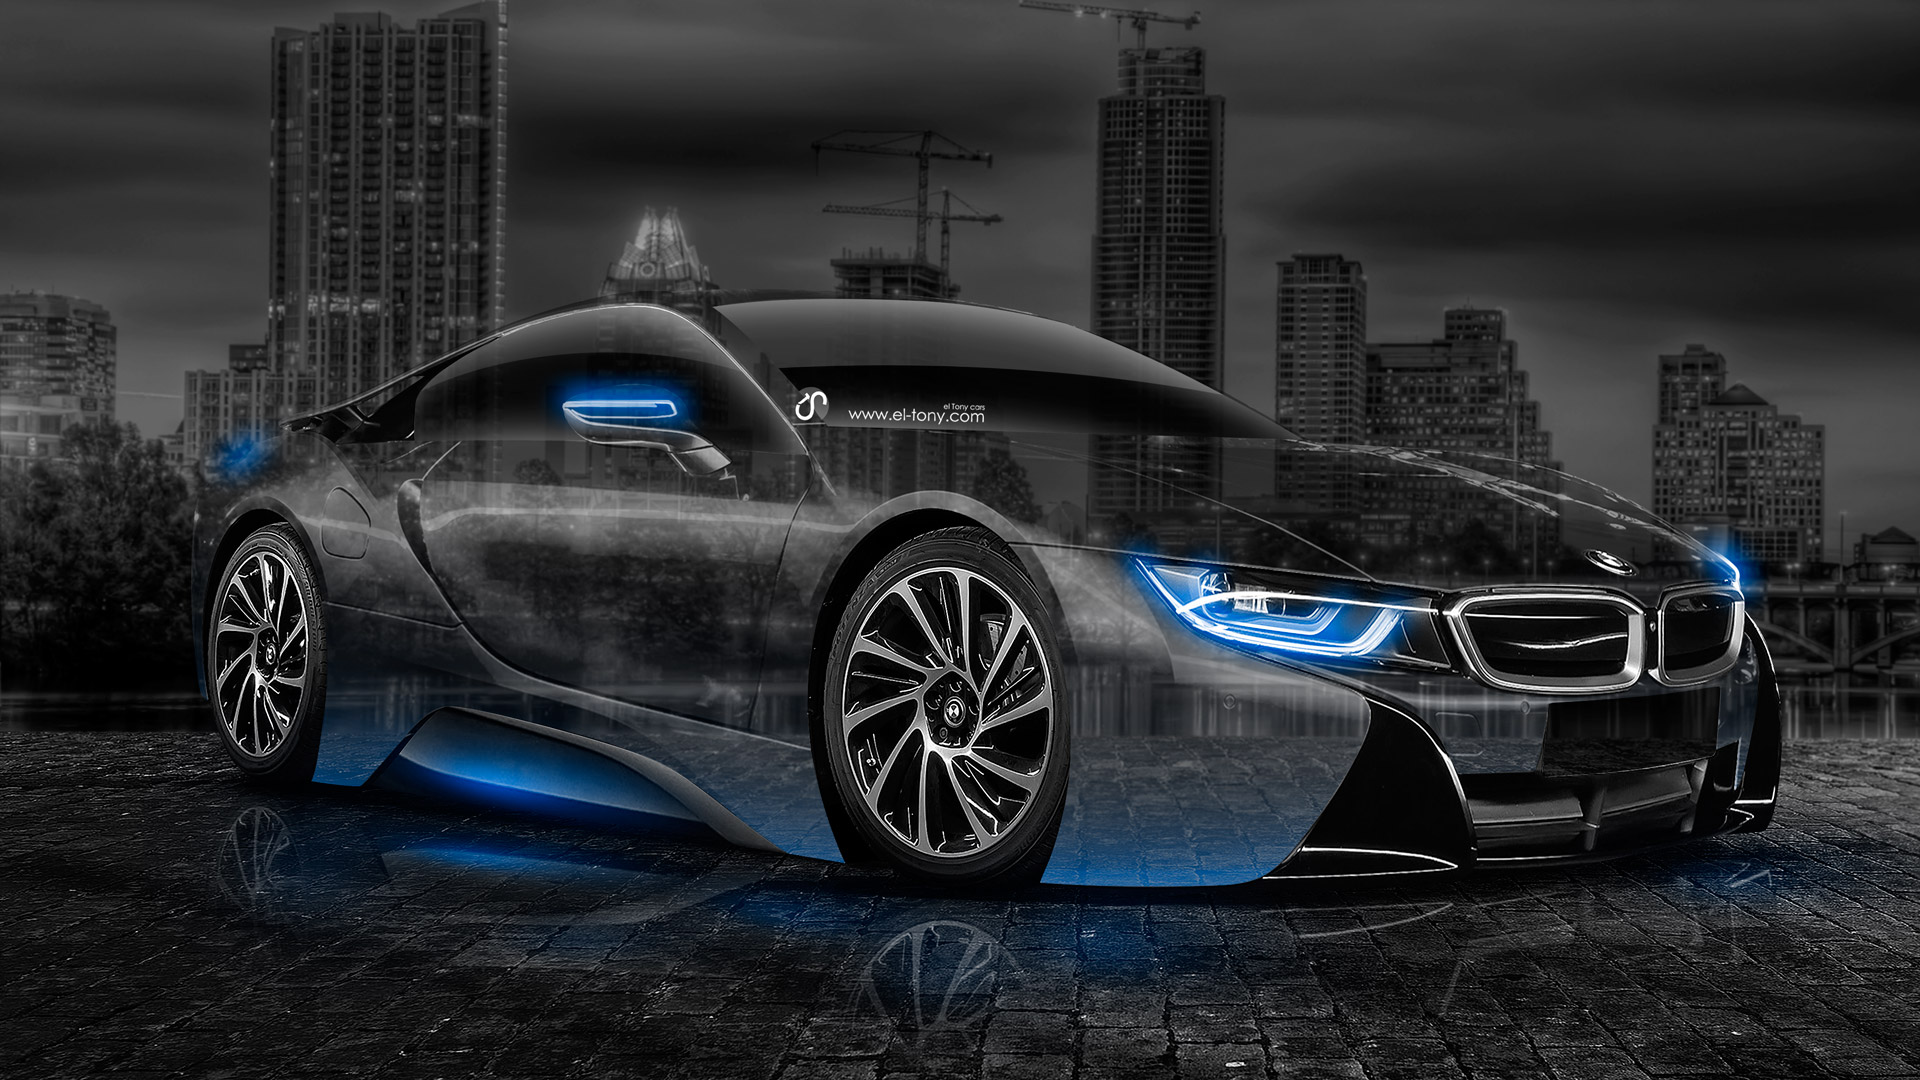 Bmw I8 Crystal City Car 2014 El Tony